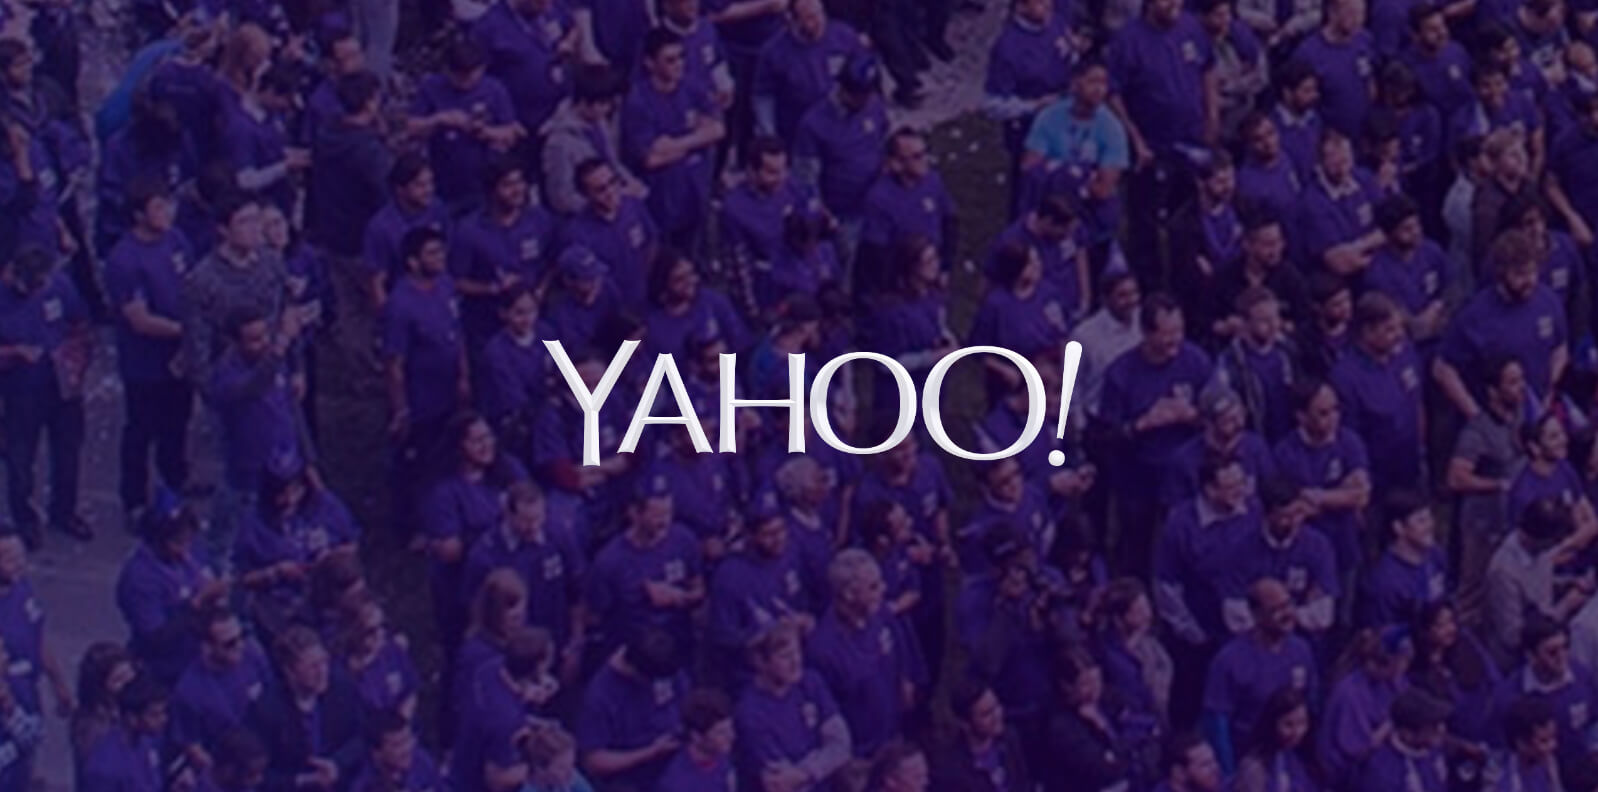 yahoo, russia, department of justice, indictment, hack